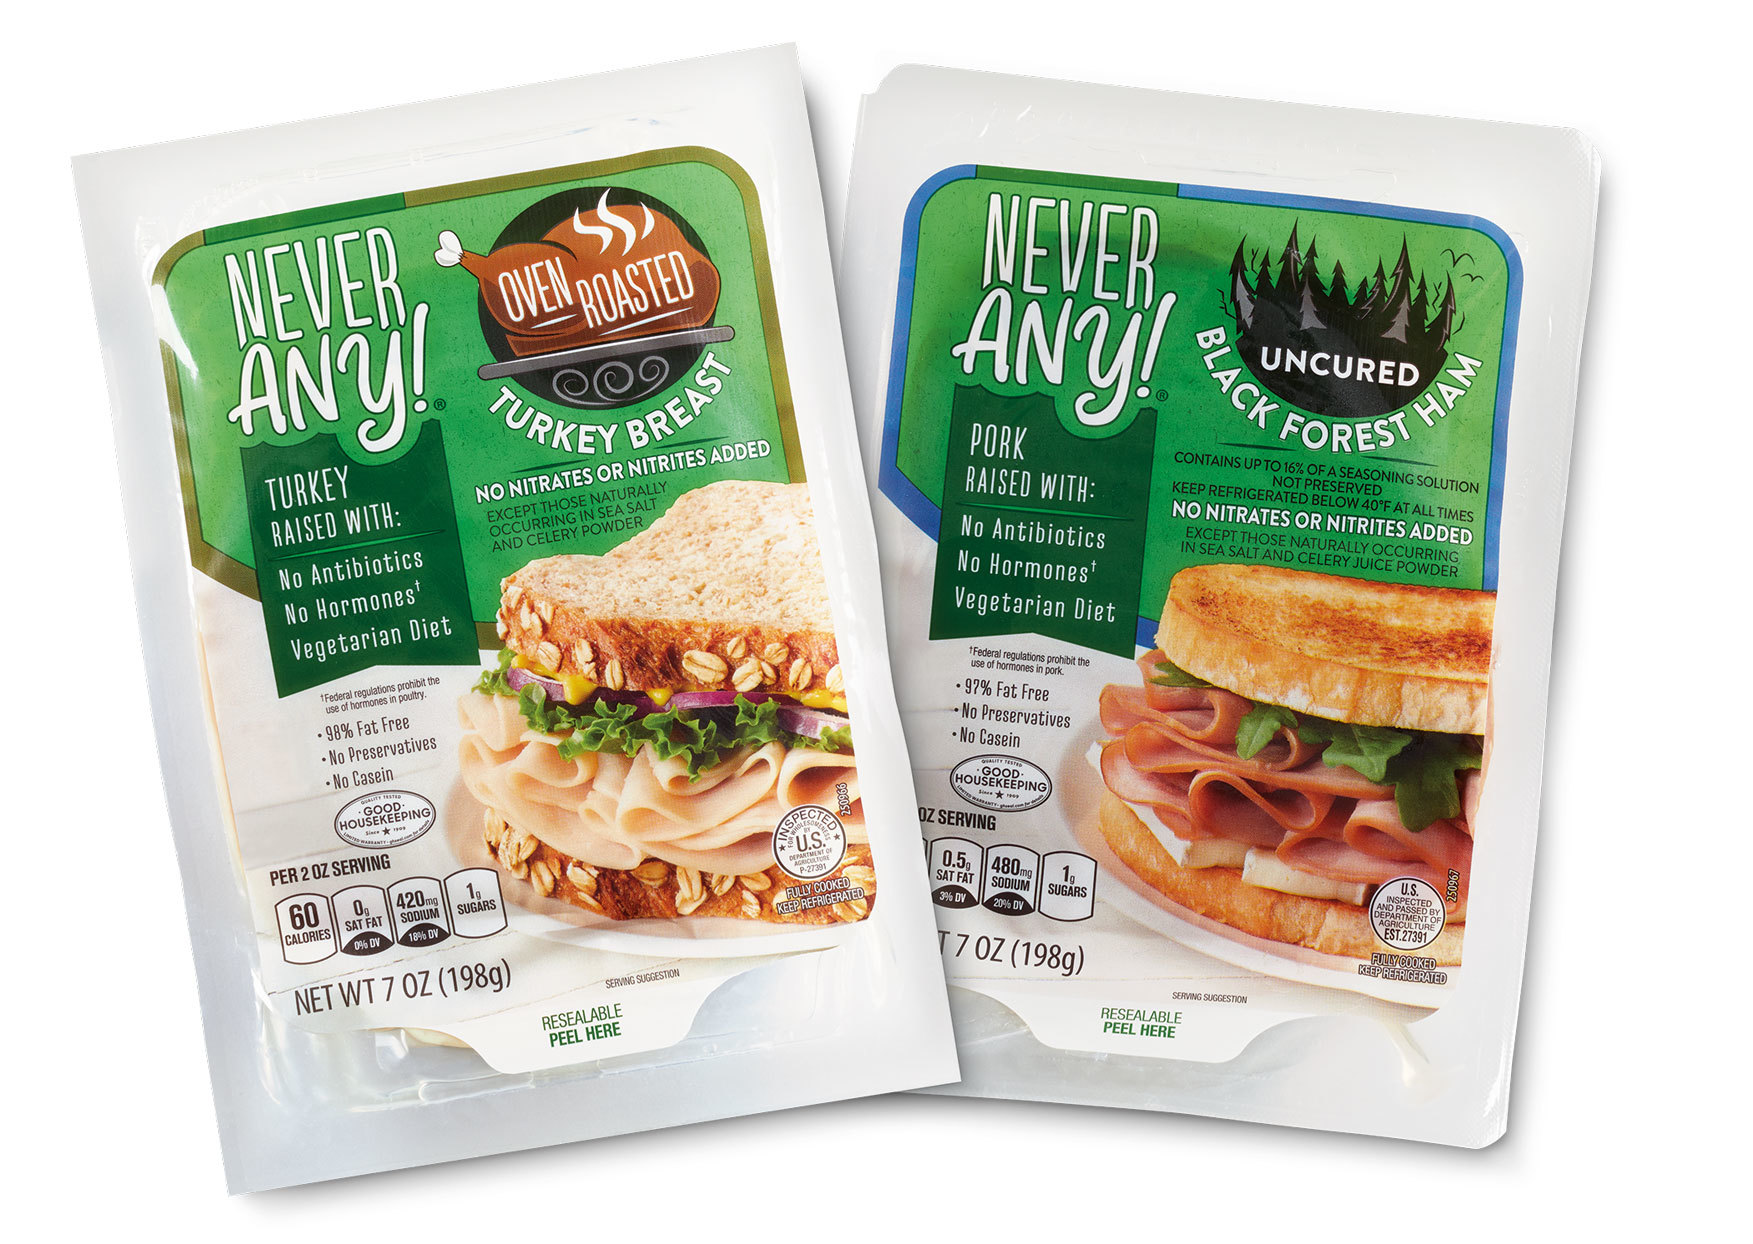 Never Any! brand packaged oven roasted turkey breast and uncured black forest ham